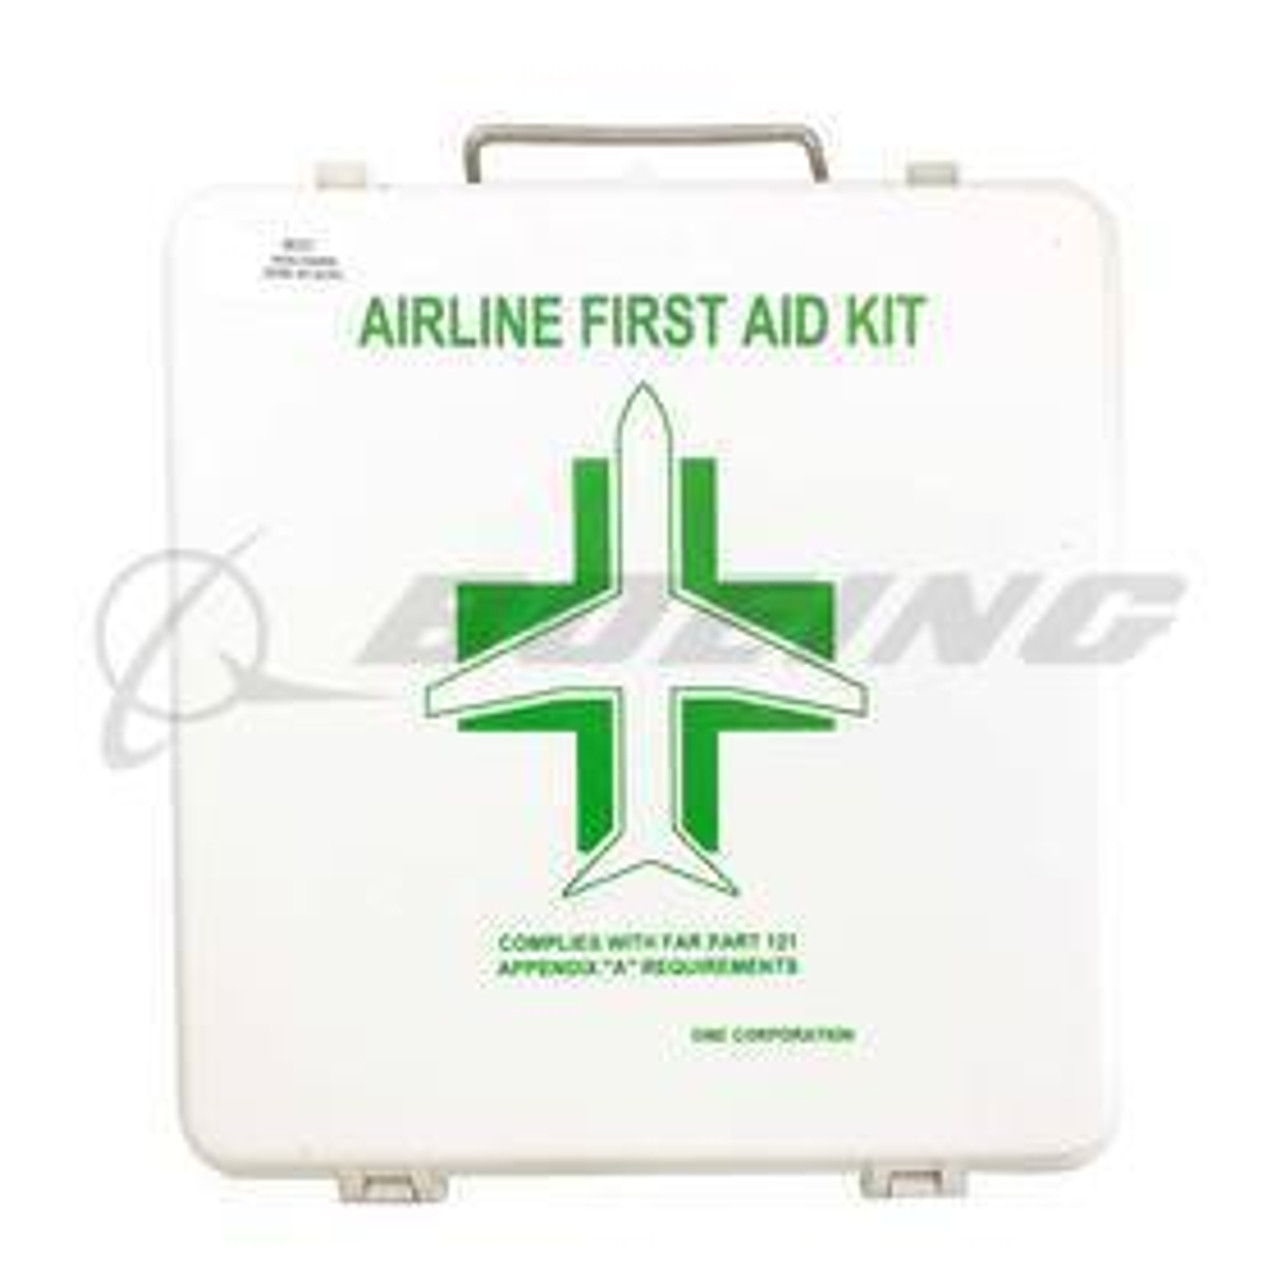 Airline First Aid Kit JAR OPS DME Astronics | S6-01-0005-312 Aircraft First Aid Kits are a requirement on board commercial airline and general aviation aircraft and this aircraft first aid kit complies with JAR OPS requirements. Each lightweight kit is constructed with flame retardant ABS material, double closure latches to assure sealing of the hinged cover and a stainless steel carrying handle. These first aid kits are supplied new and complete with OEM FAA 8130-3.